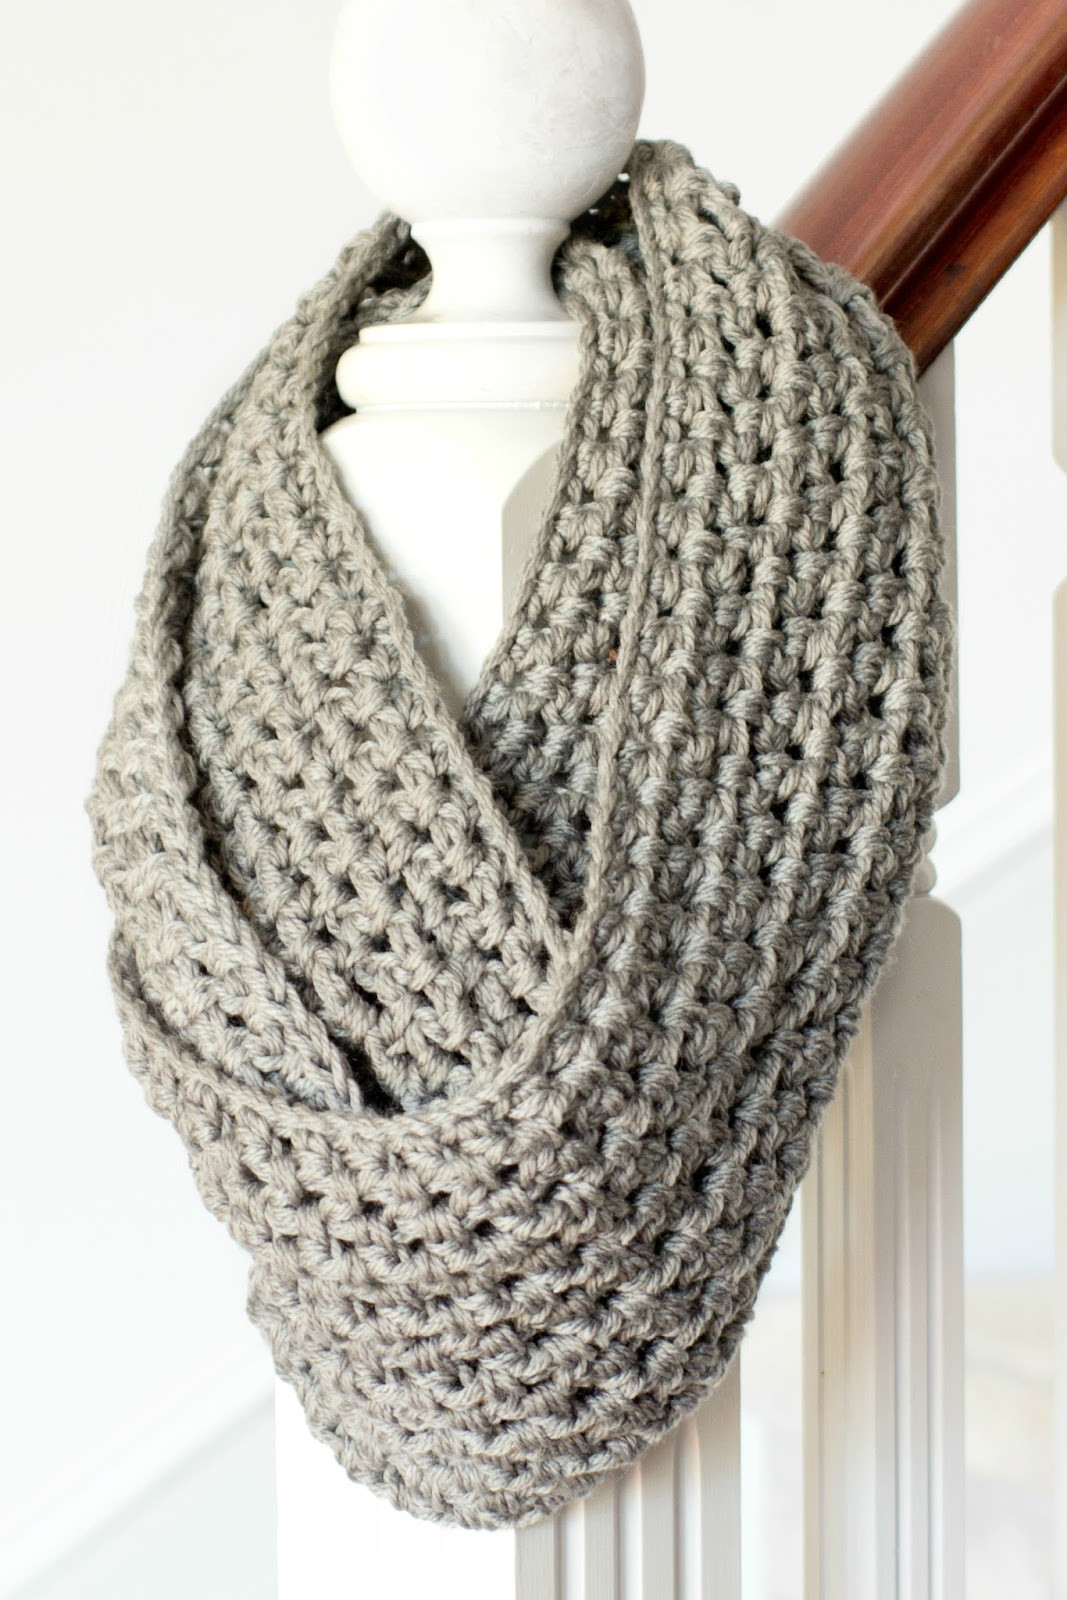 Infinity Scarf Pattern Elegant 42 Fun and Cozy Diy Scarves Crafts to Make Of Awesome 42 Ideas Infinity Scarf Pattern